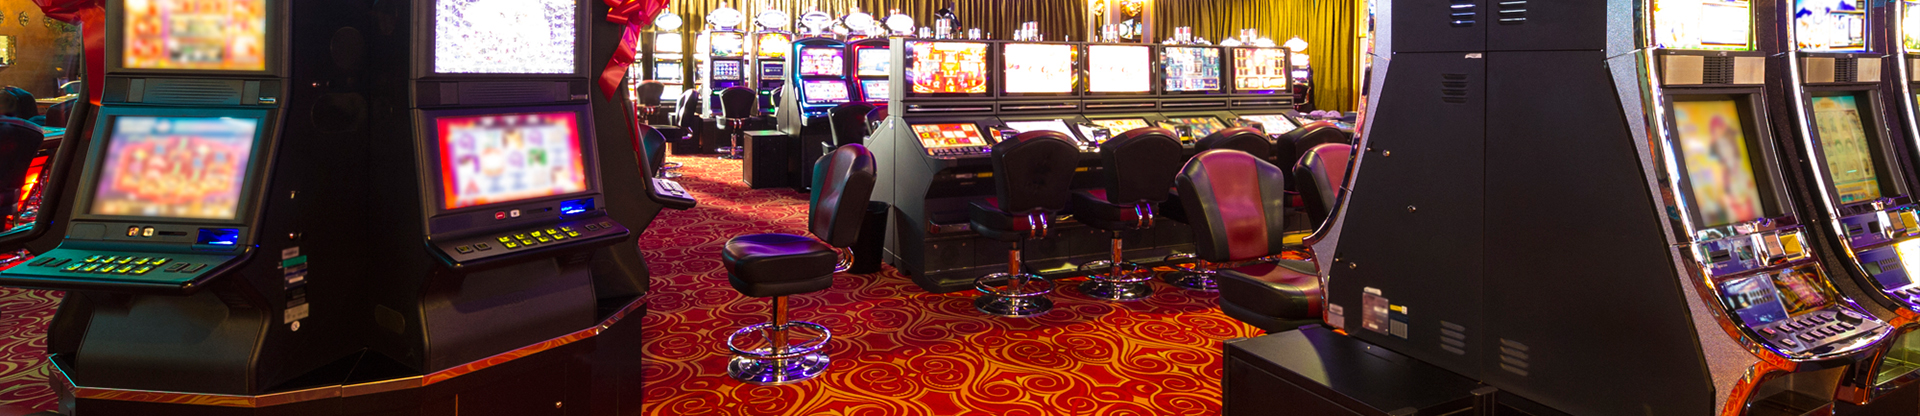 commercial pest control for casinos